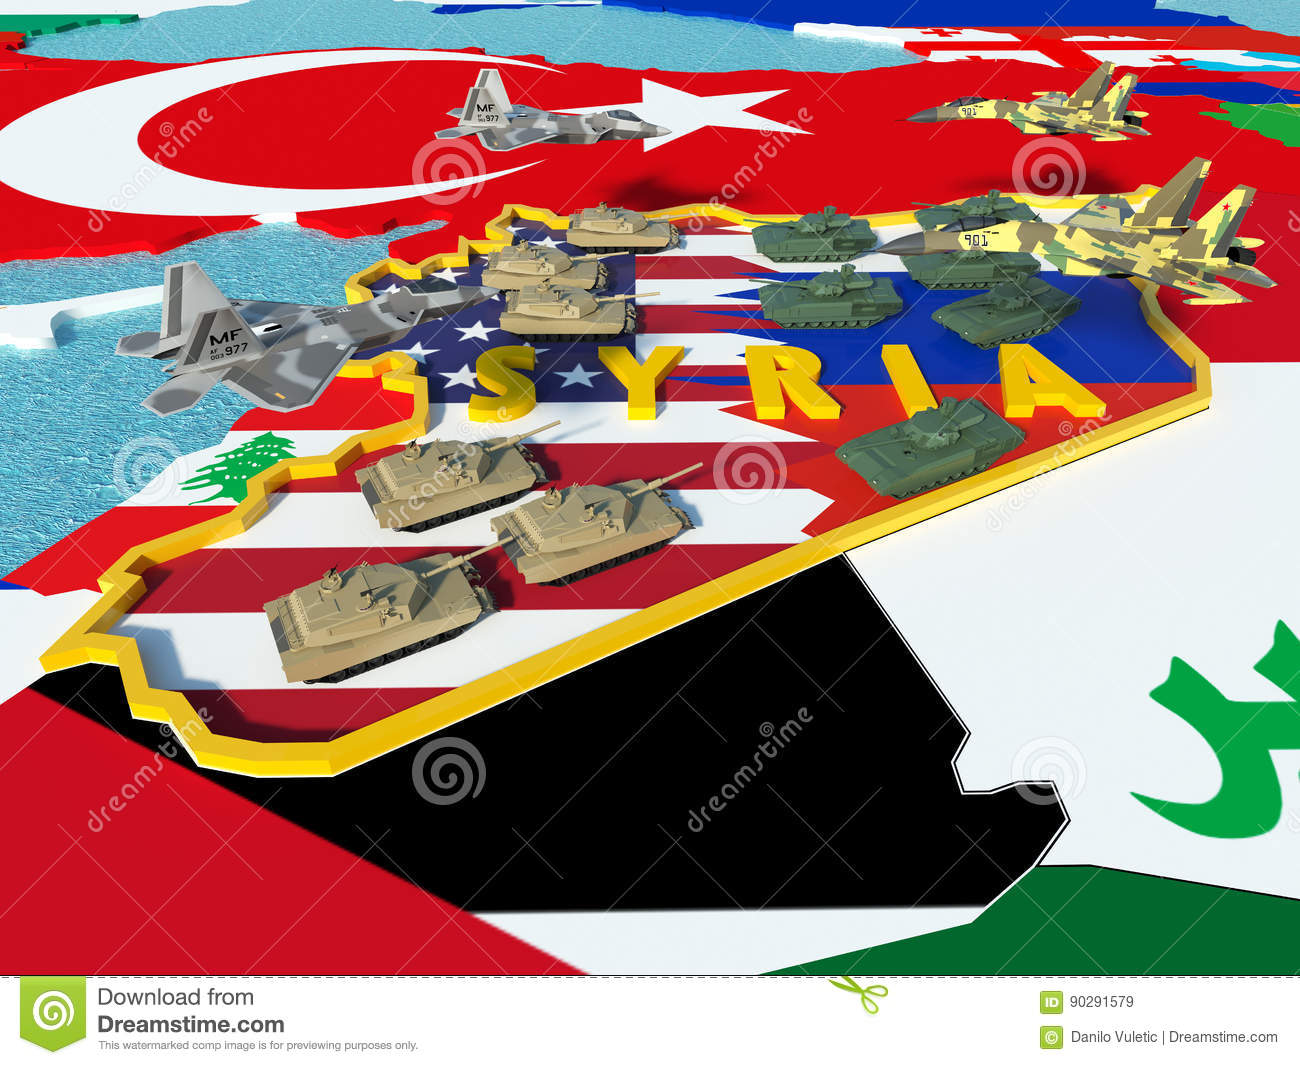 Download USA And Russia Conflict Over Situation In Syria - 3d Render Stock Illustration - Illustration of disaster, nations: 90291579